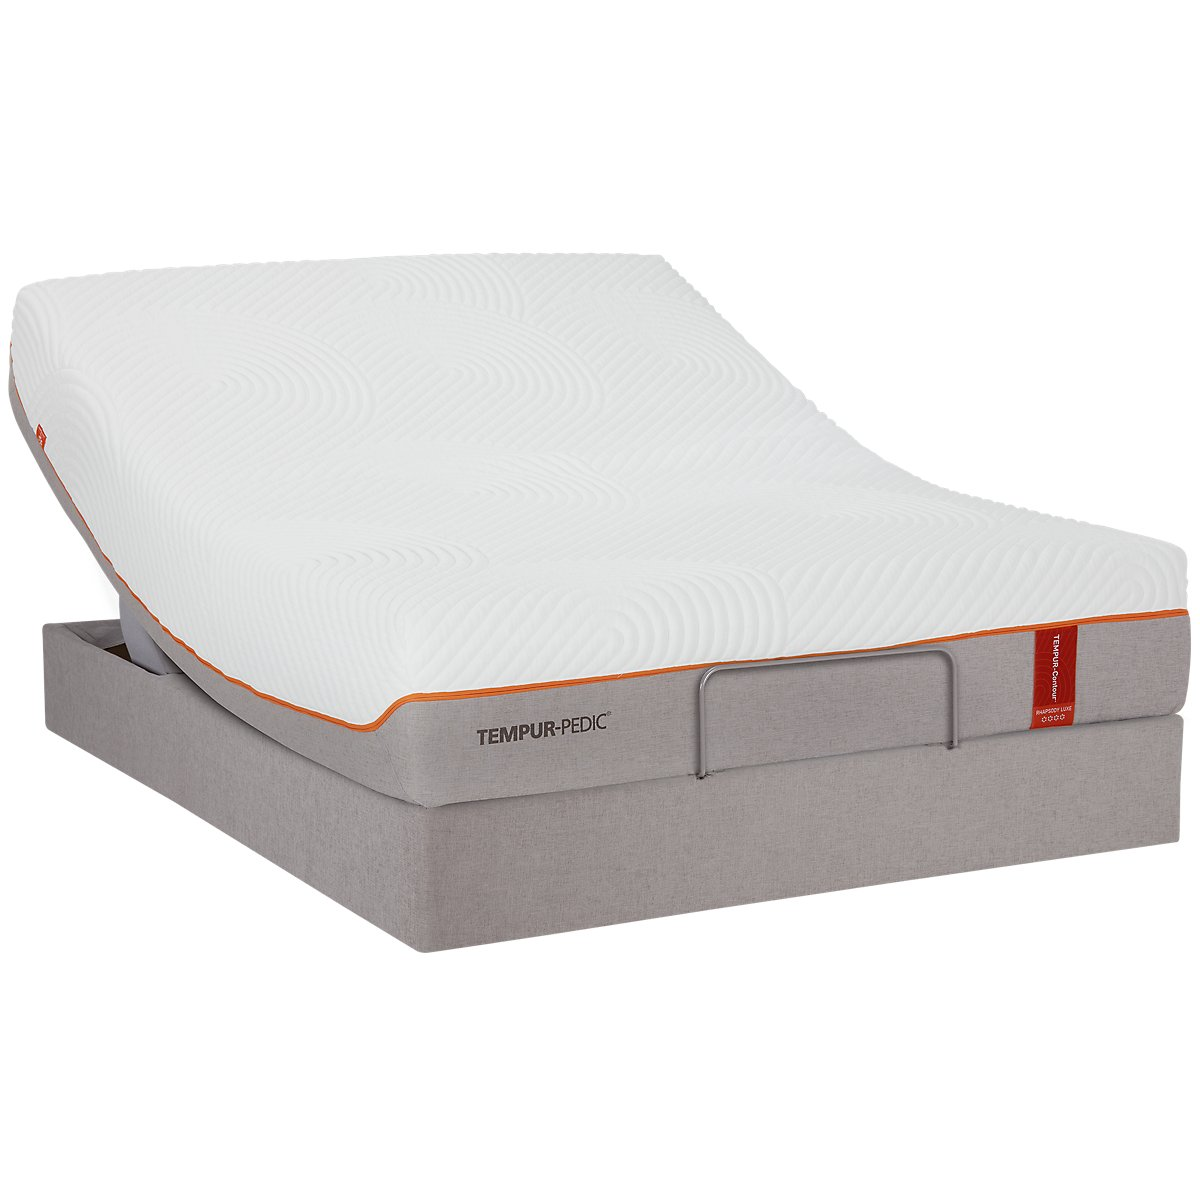 Are Adjustable Beds Worth It : Tempurpedic cloud luxe breeze review sleep number